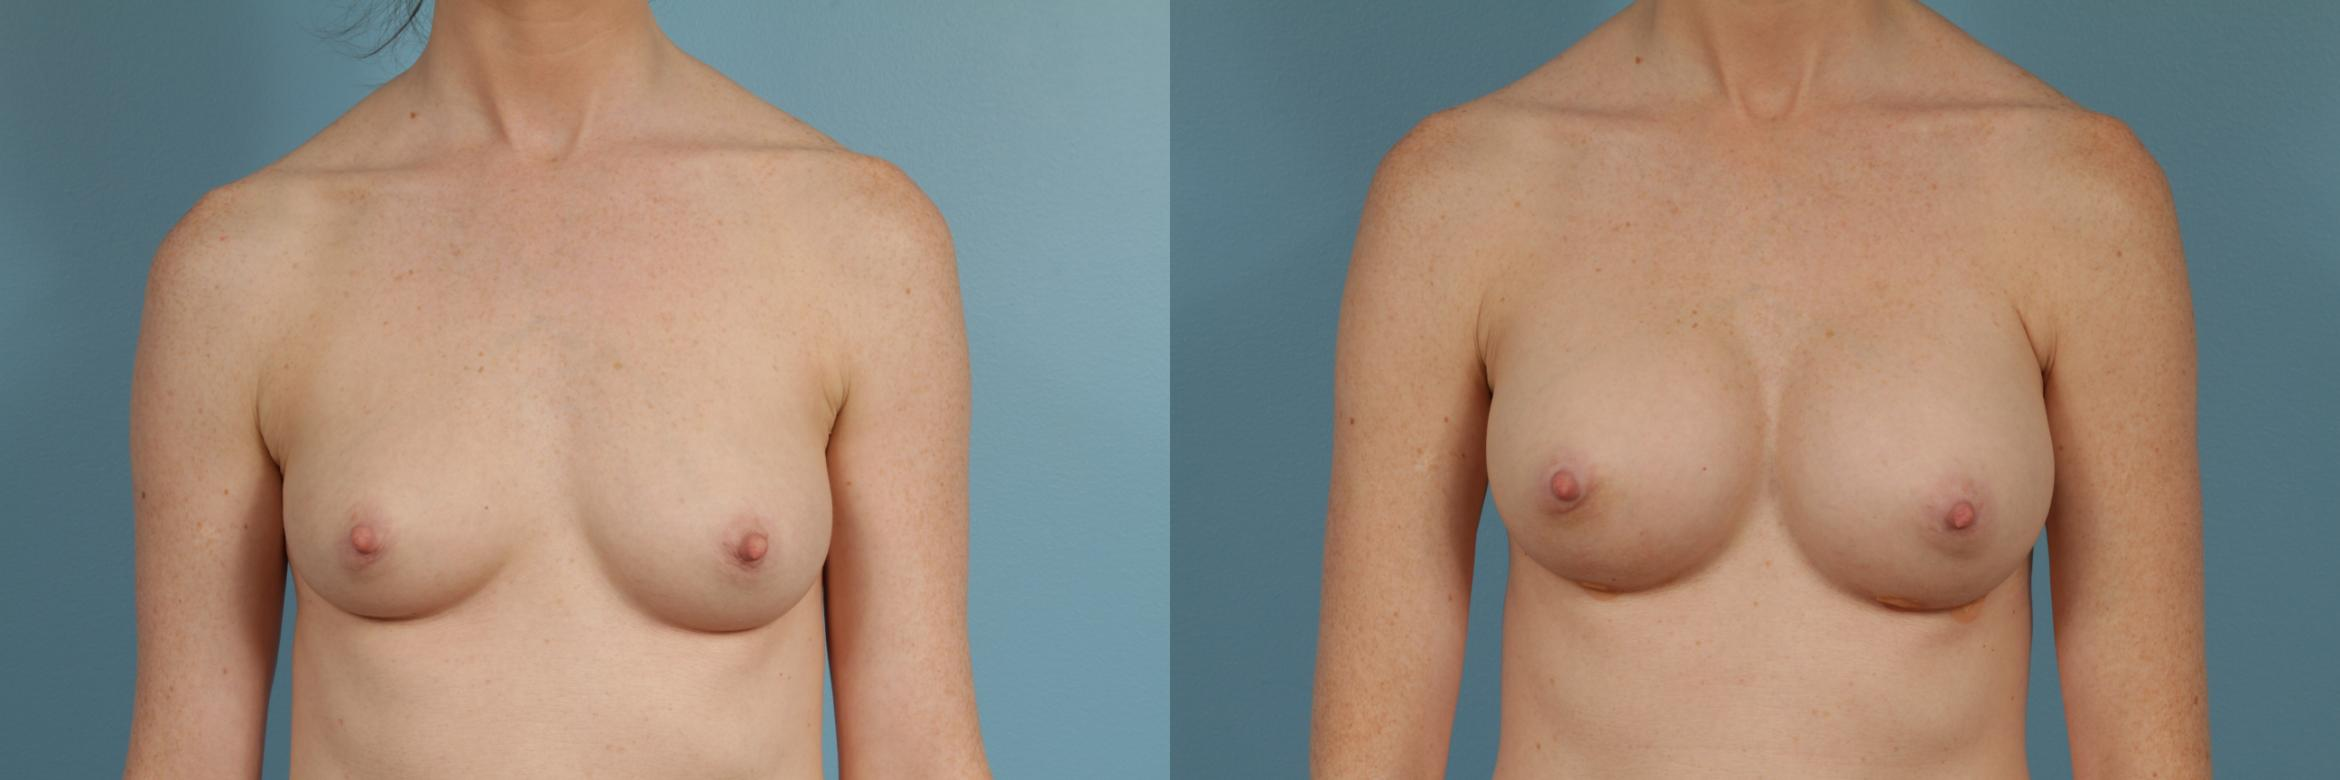 Breast Augmentation Case 320 Before & After View #1 | Chicago, IL | TLKM Plastic Surgery